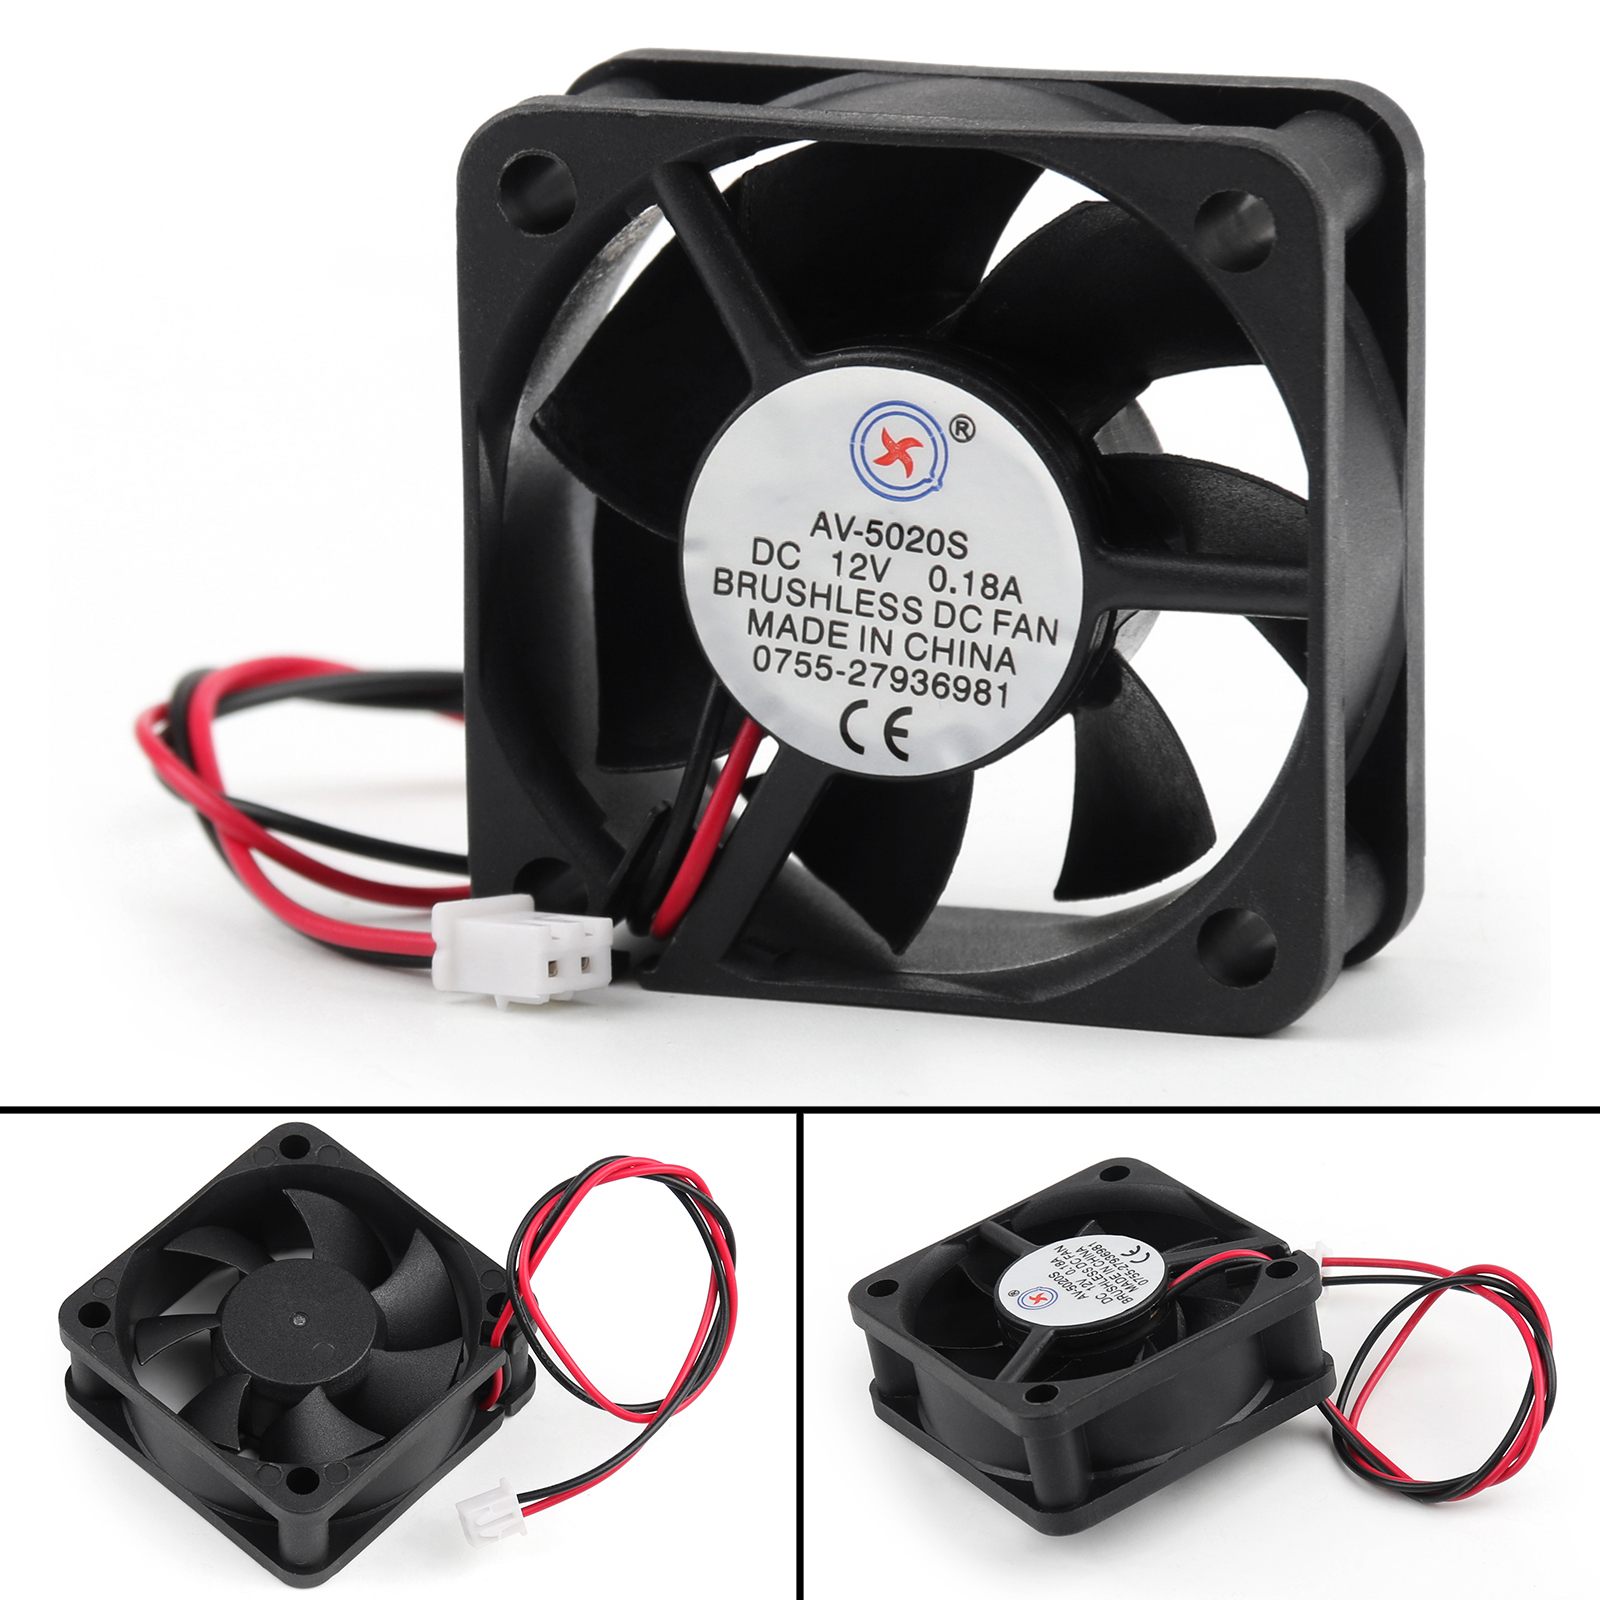 hight resolution of details about dc brushless cooling pc computer fan 12v 0 18a 5020s 50x50x20mm 2 pin wire ua